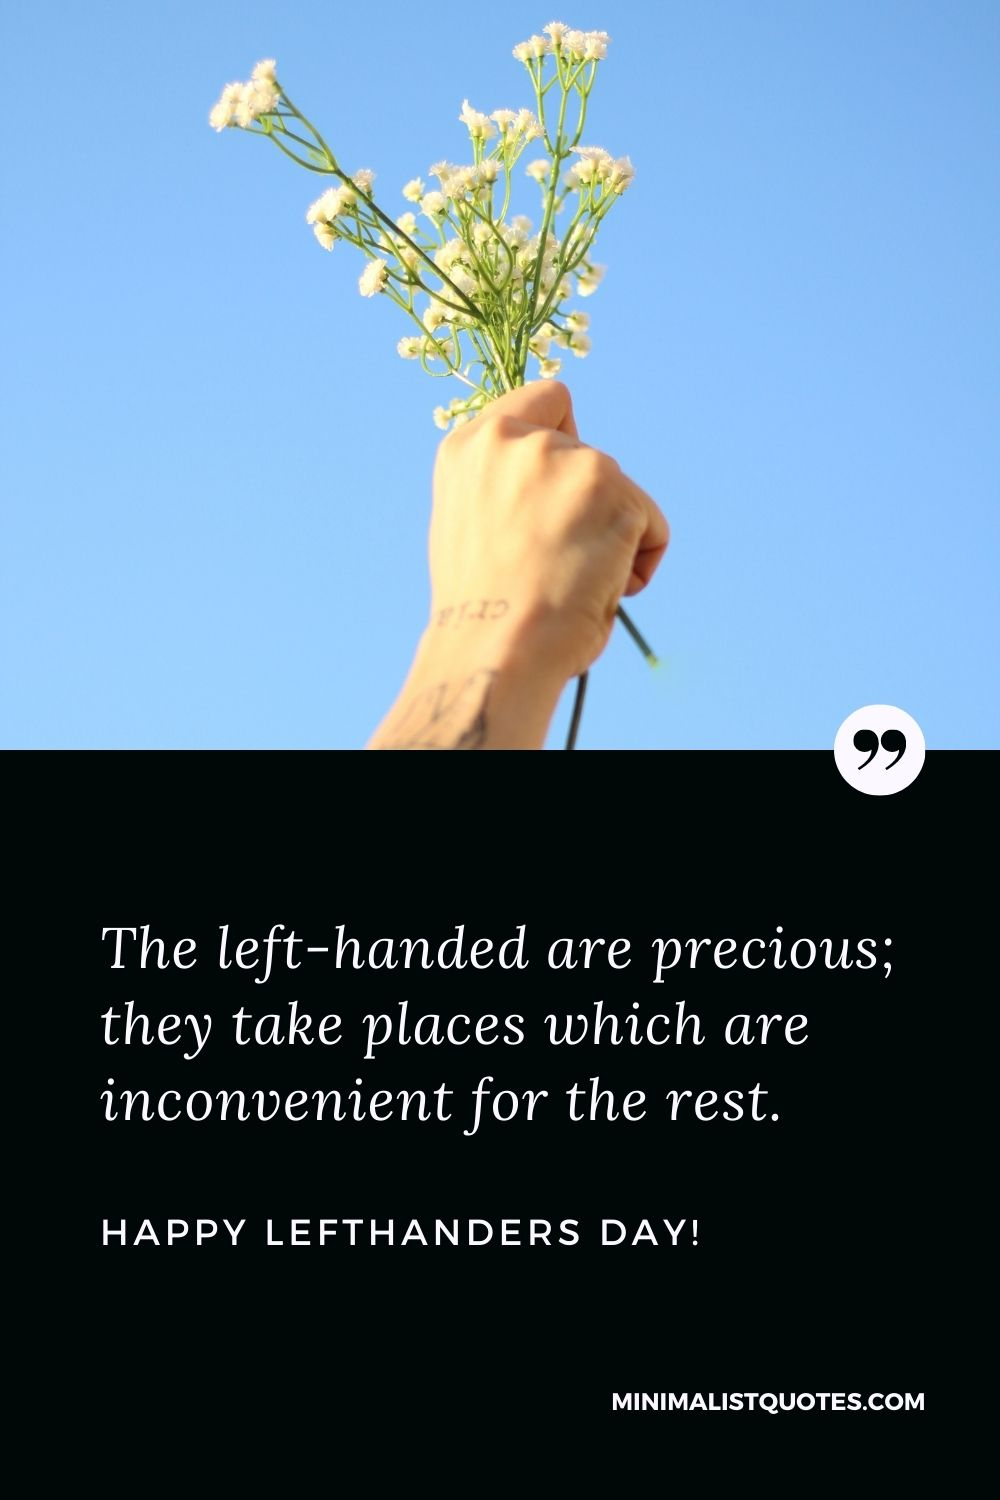 Left Handers Day Quotes: The left-handed are precious; they take places which are inconvenient for the rest. Happy Left Handers Day!